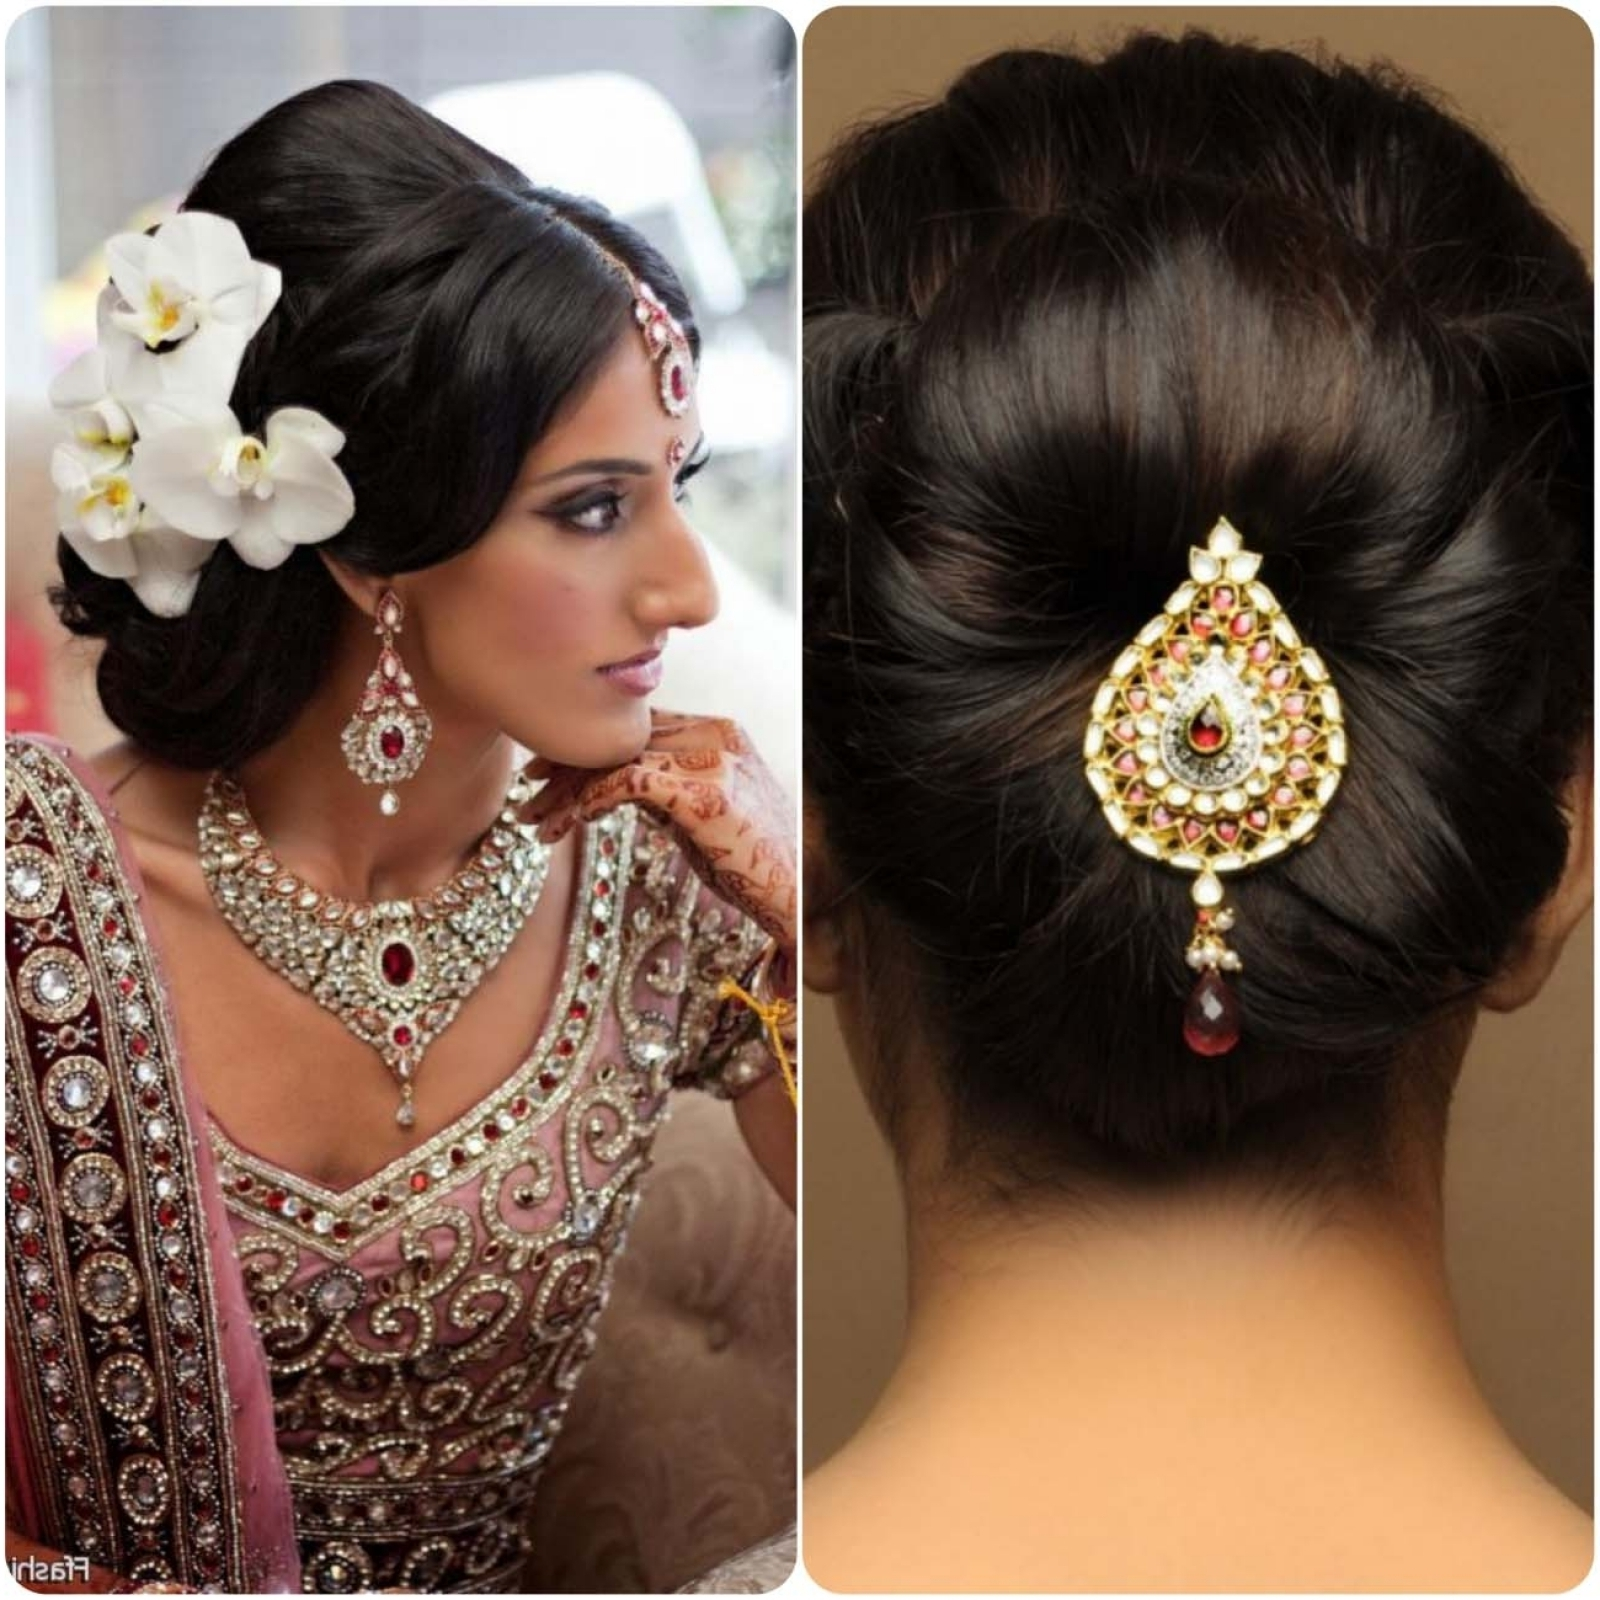 Famous Hairstyles For Medium Length Hair For Indian Wedding Inside Wedding Hairstyles Indian Brides (View 3 of 15)